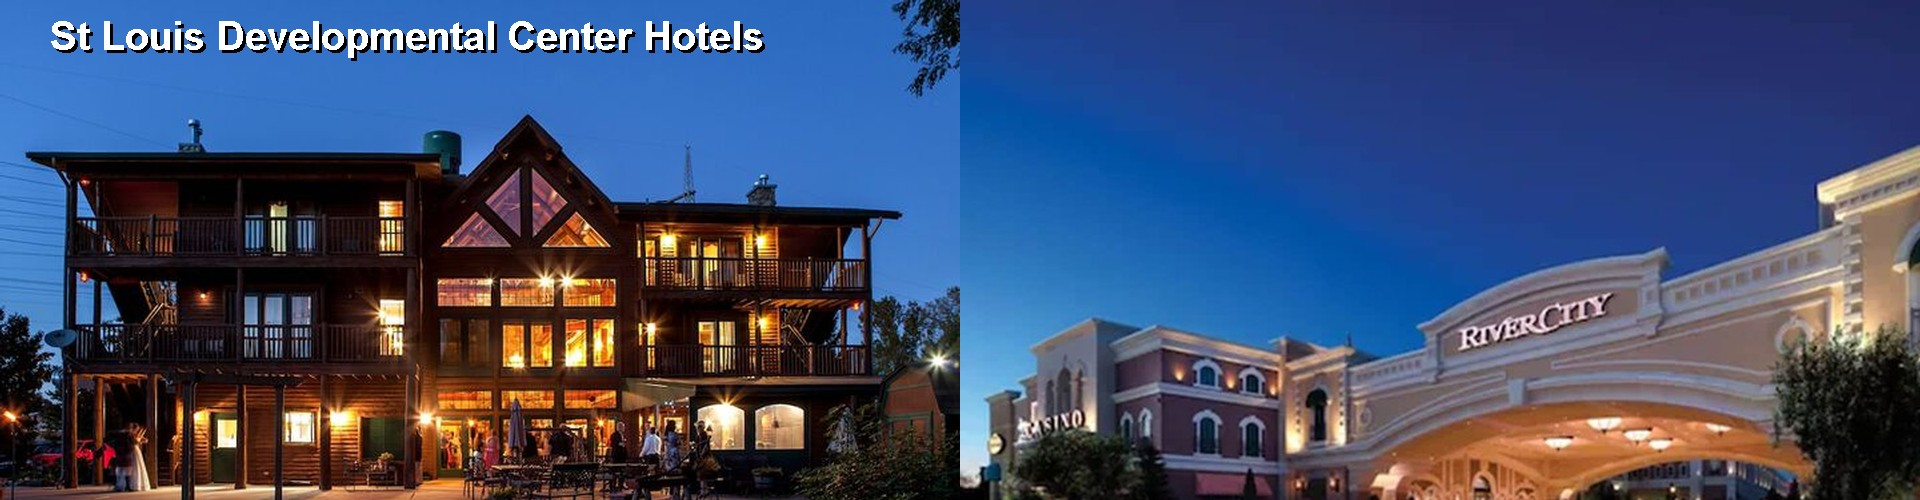 5 Best Hotels near St Louis Developmental Center